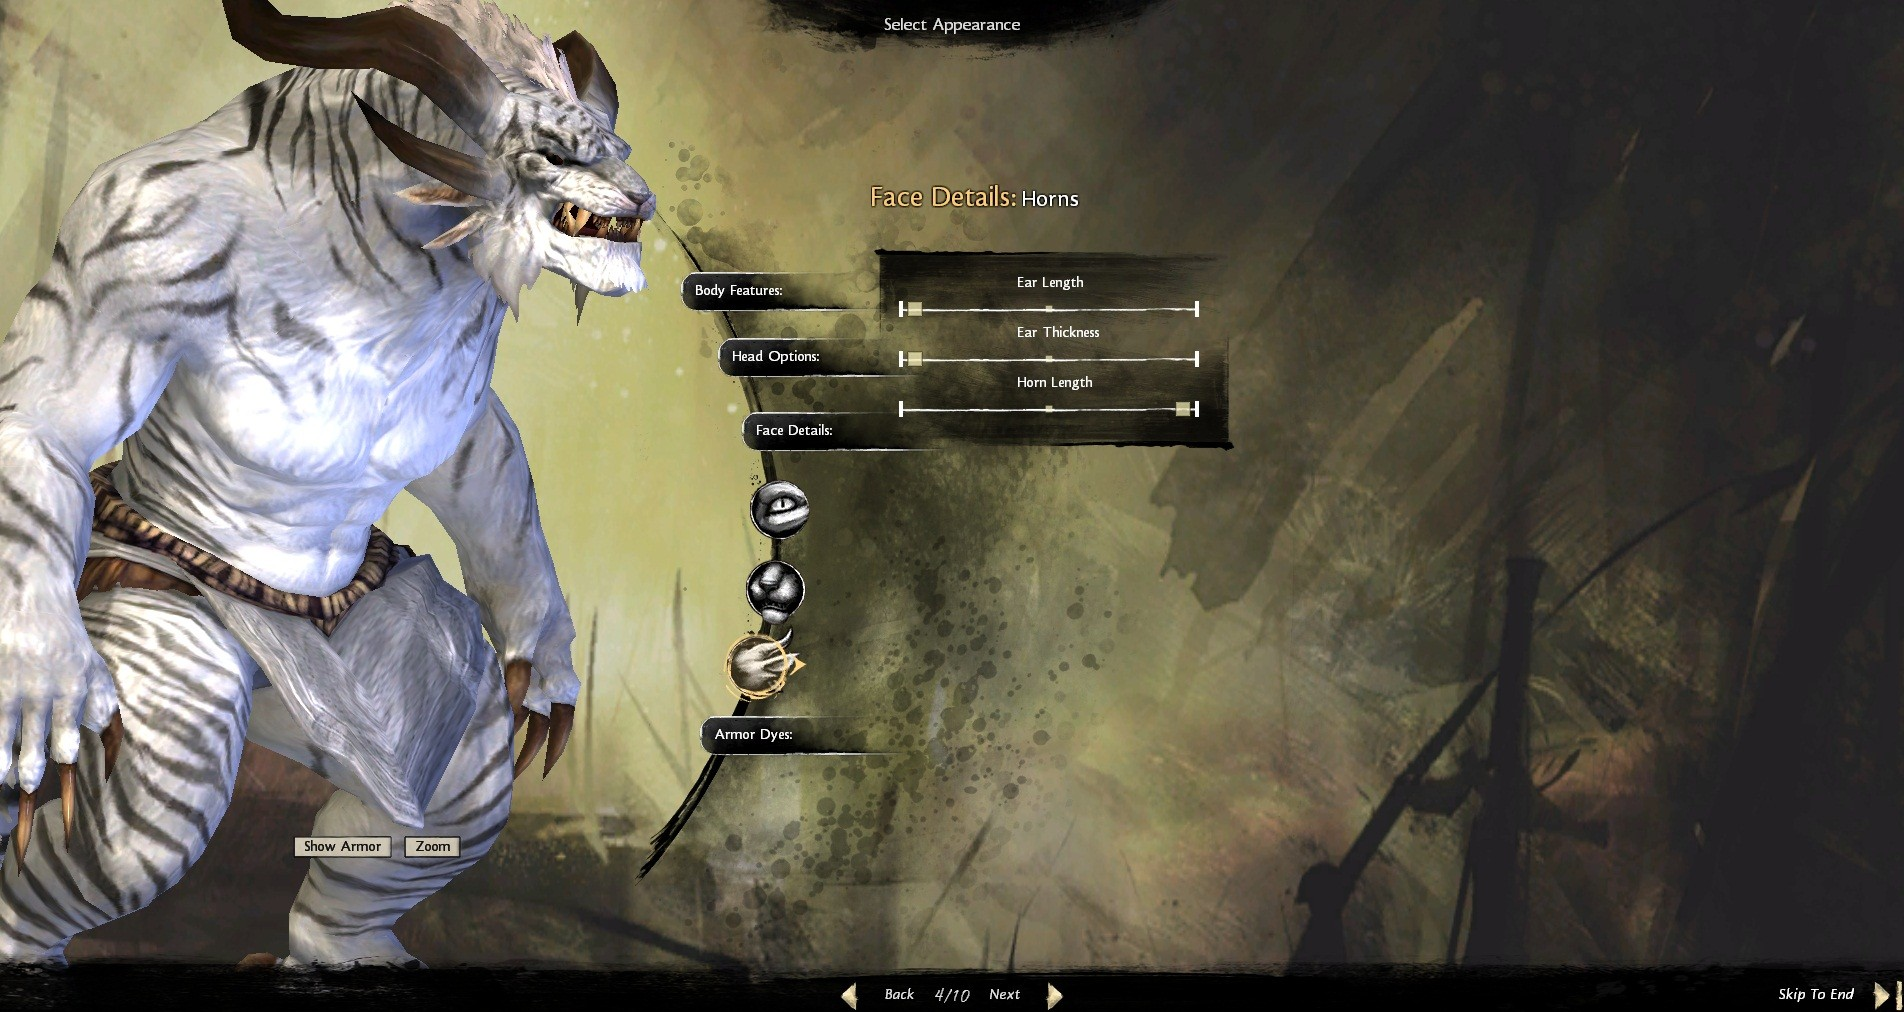 Guild Wars 2 - On the lowest graphical settings, it's still pretty (lowered to prep for PvP)